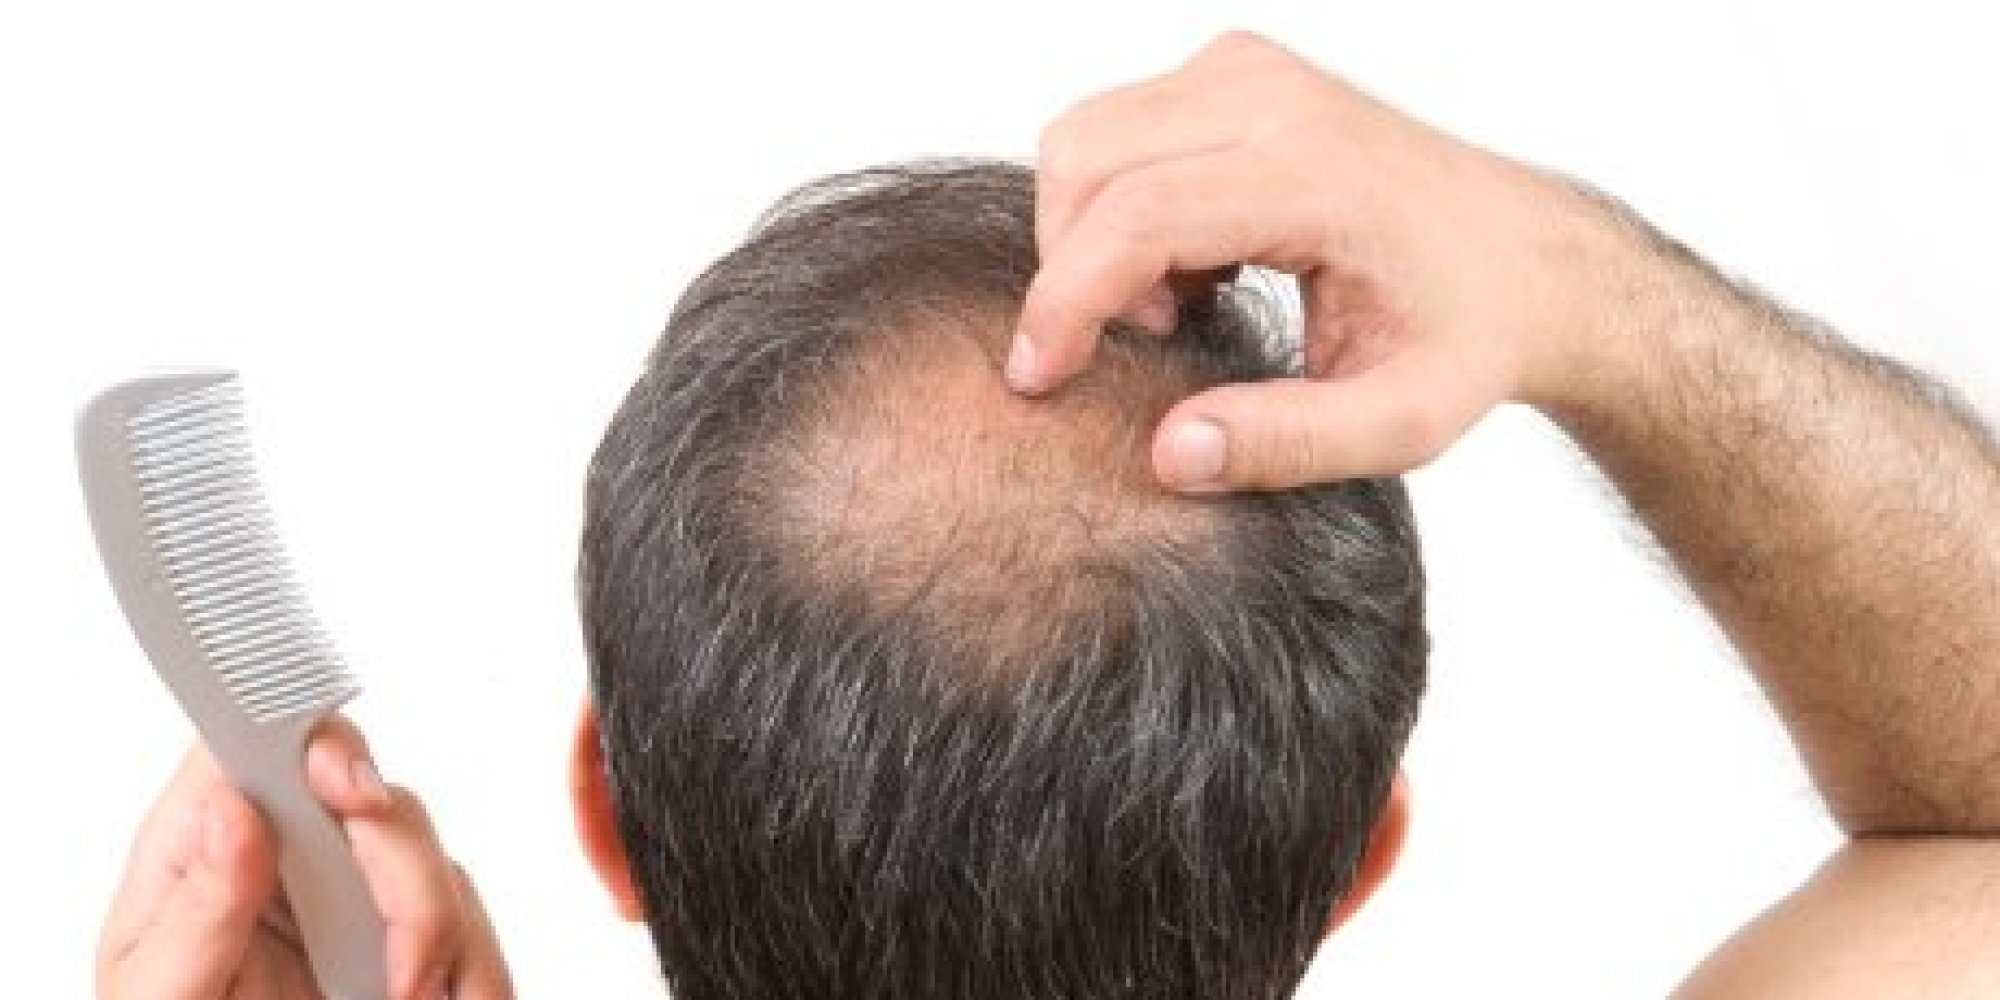 How Does Diabetes Mellitus Impact Hair Growth?